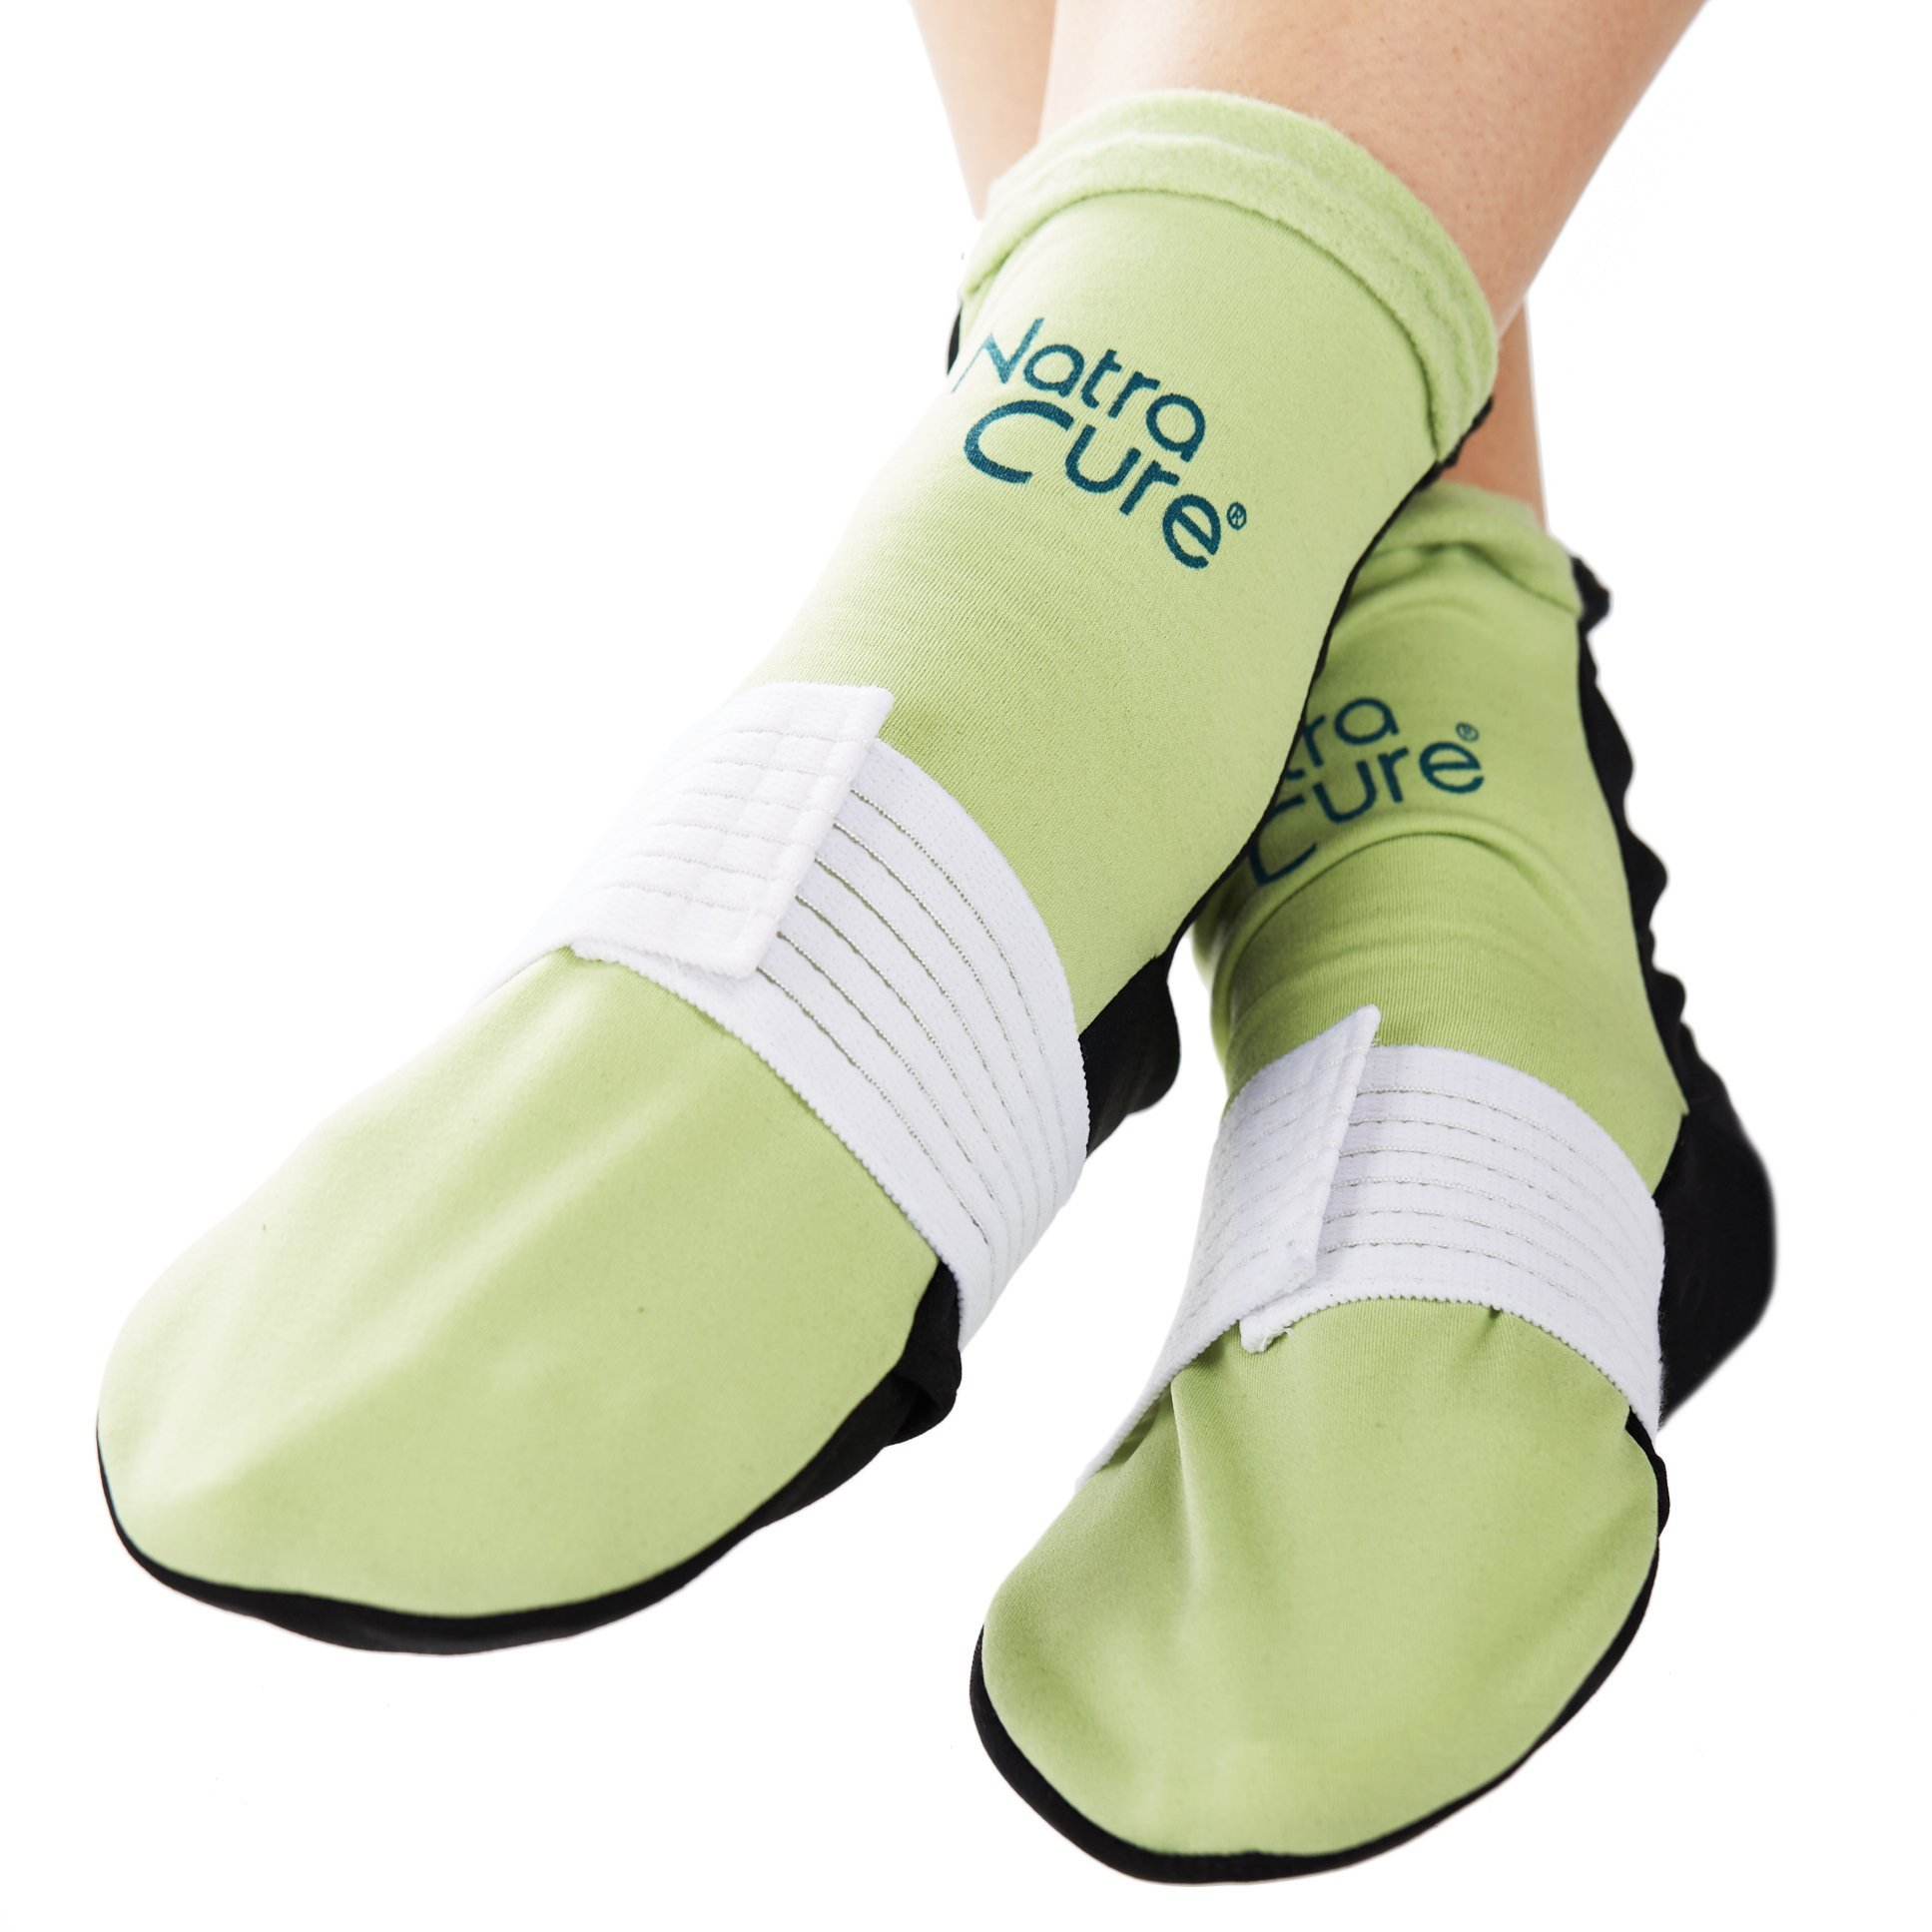 NatraCure Cold Therapy Socks (w/Compression Strap) - Extra Arch and Plantar Fasciitis Relief - (For feet, heels, pain, swelling) - (Size: Small/Medium) by NatraCure